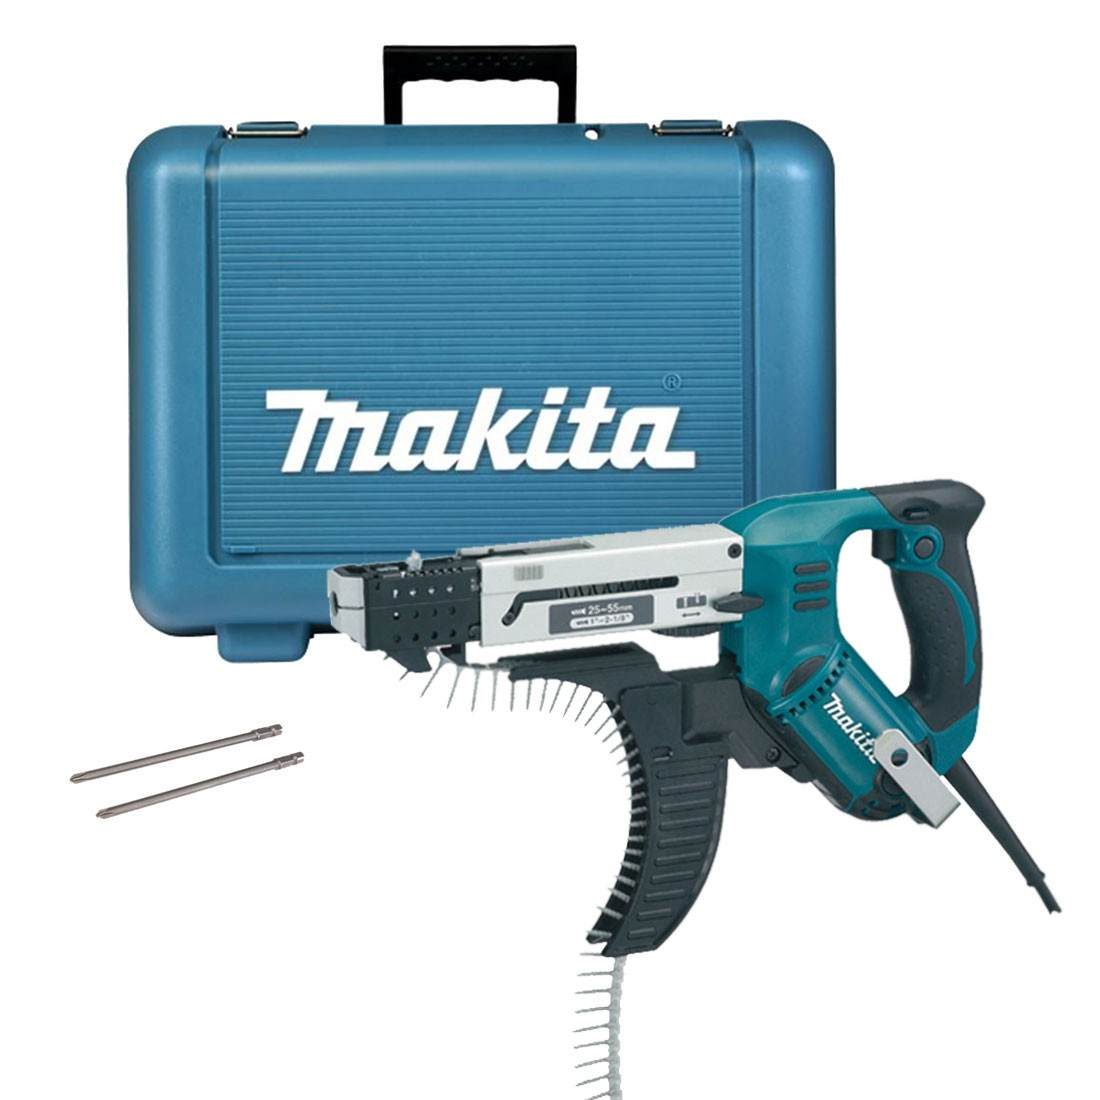 Makita 6843 Auto Feed Screwdriver in Carry Case